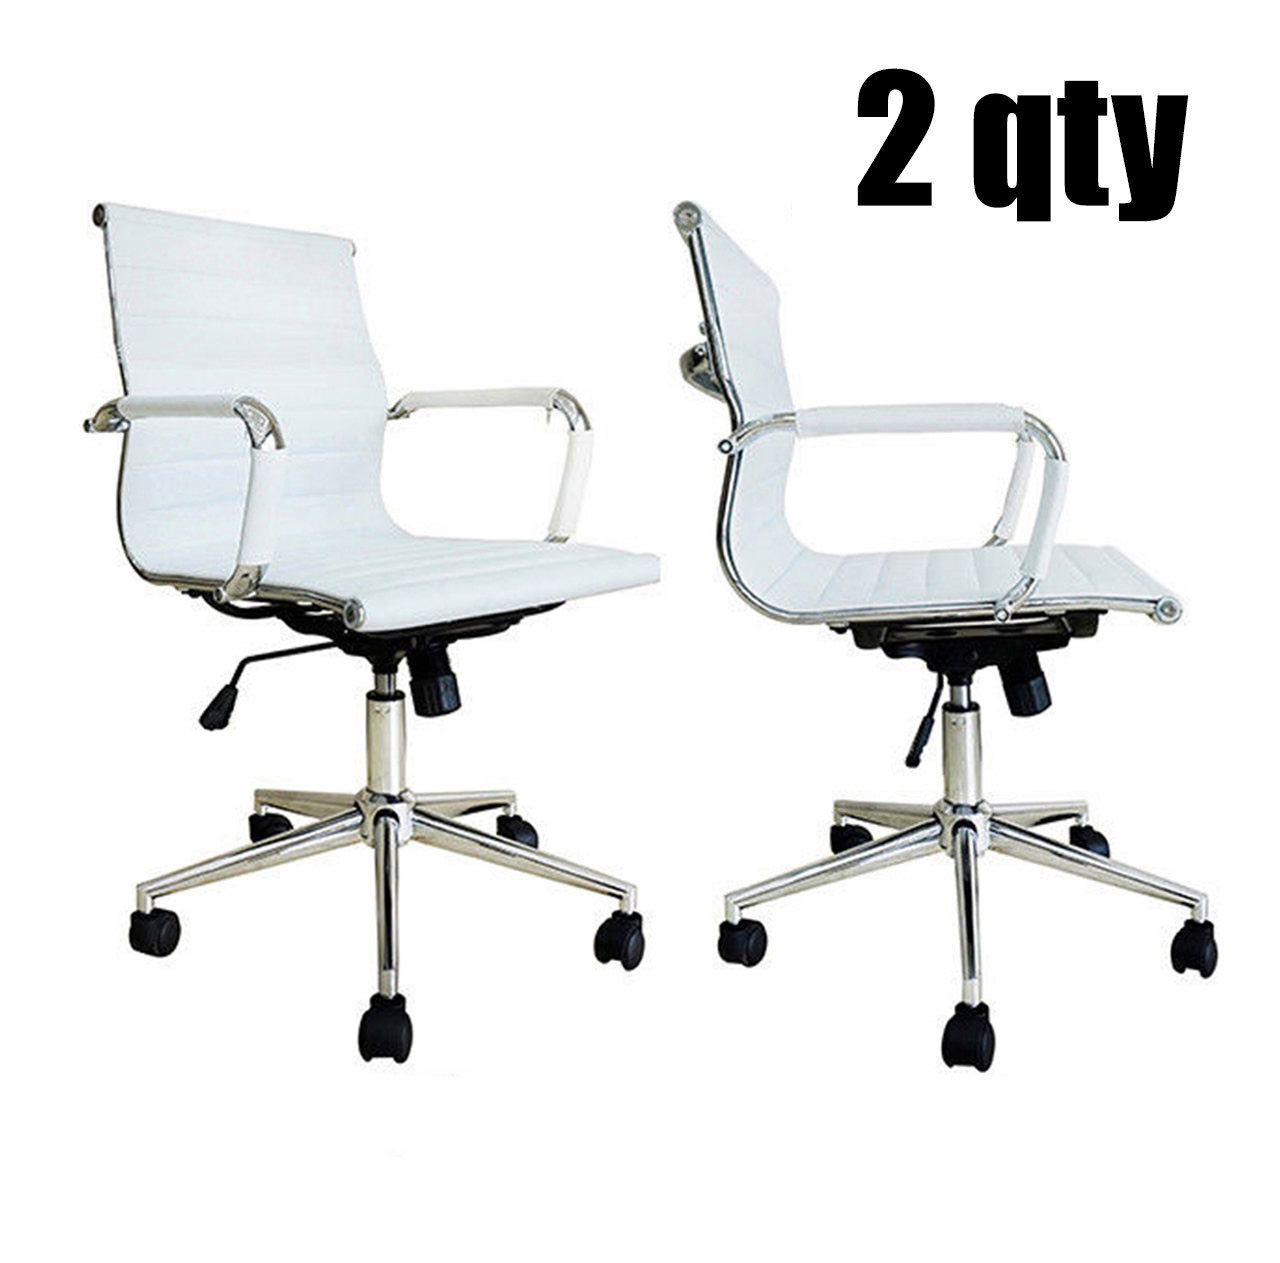 2xhome Set of 2 - Black Modern Mid Back Ribbed PU Leather Swivel Tilt Adjustable Office Chair Armless Designer Boss Executive Management Manager Conference Room Work Task Computer